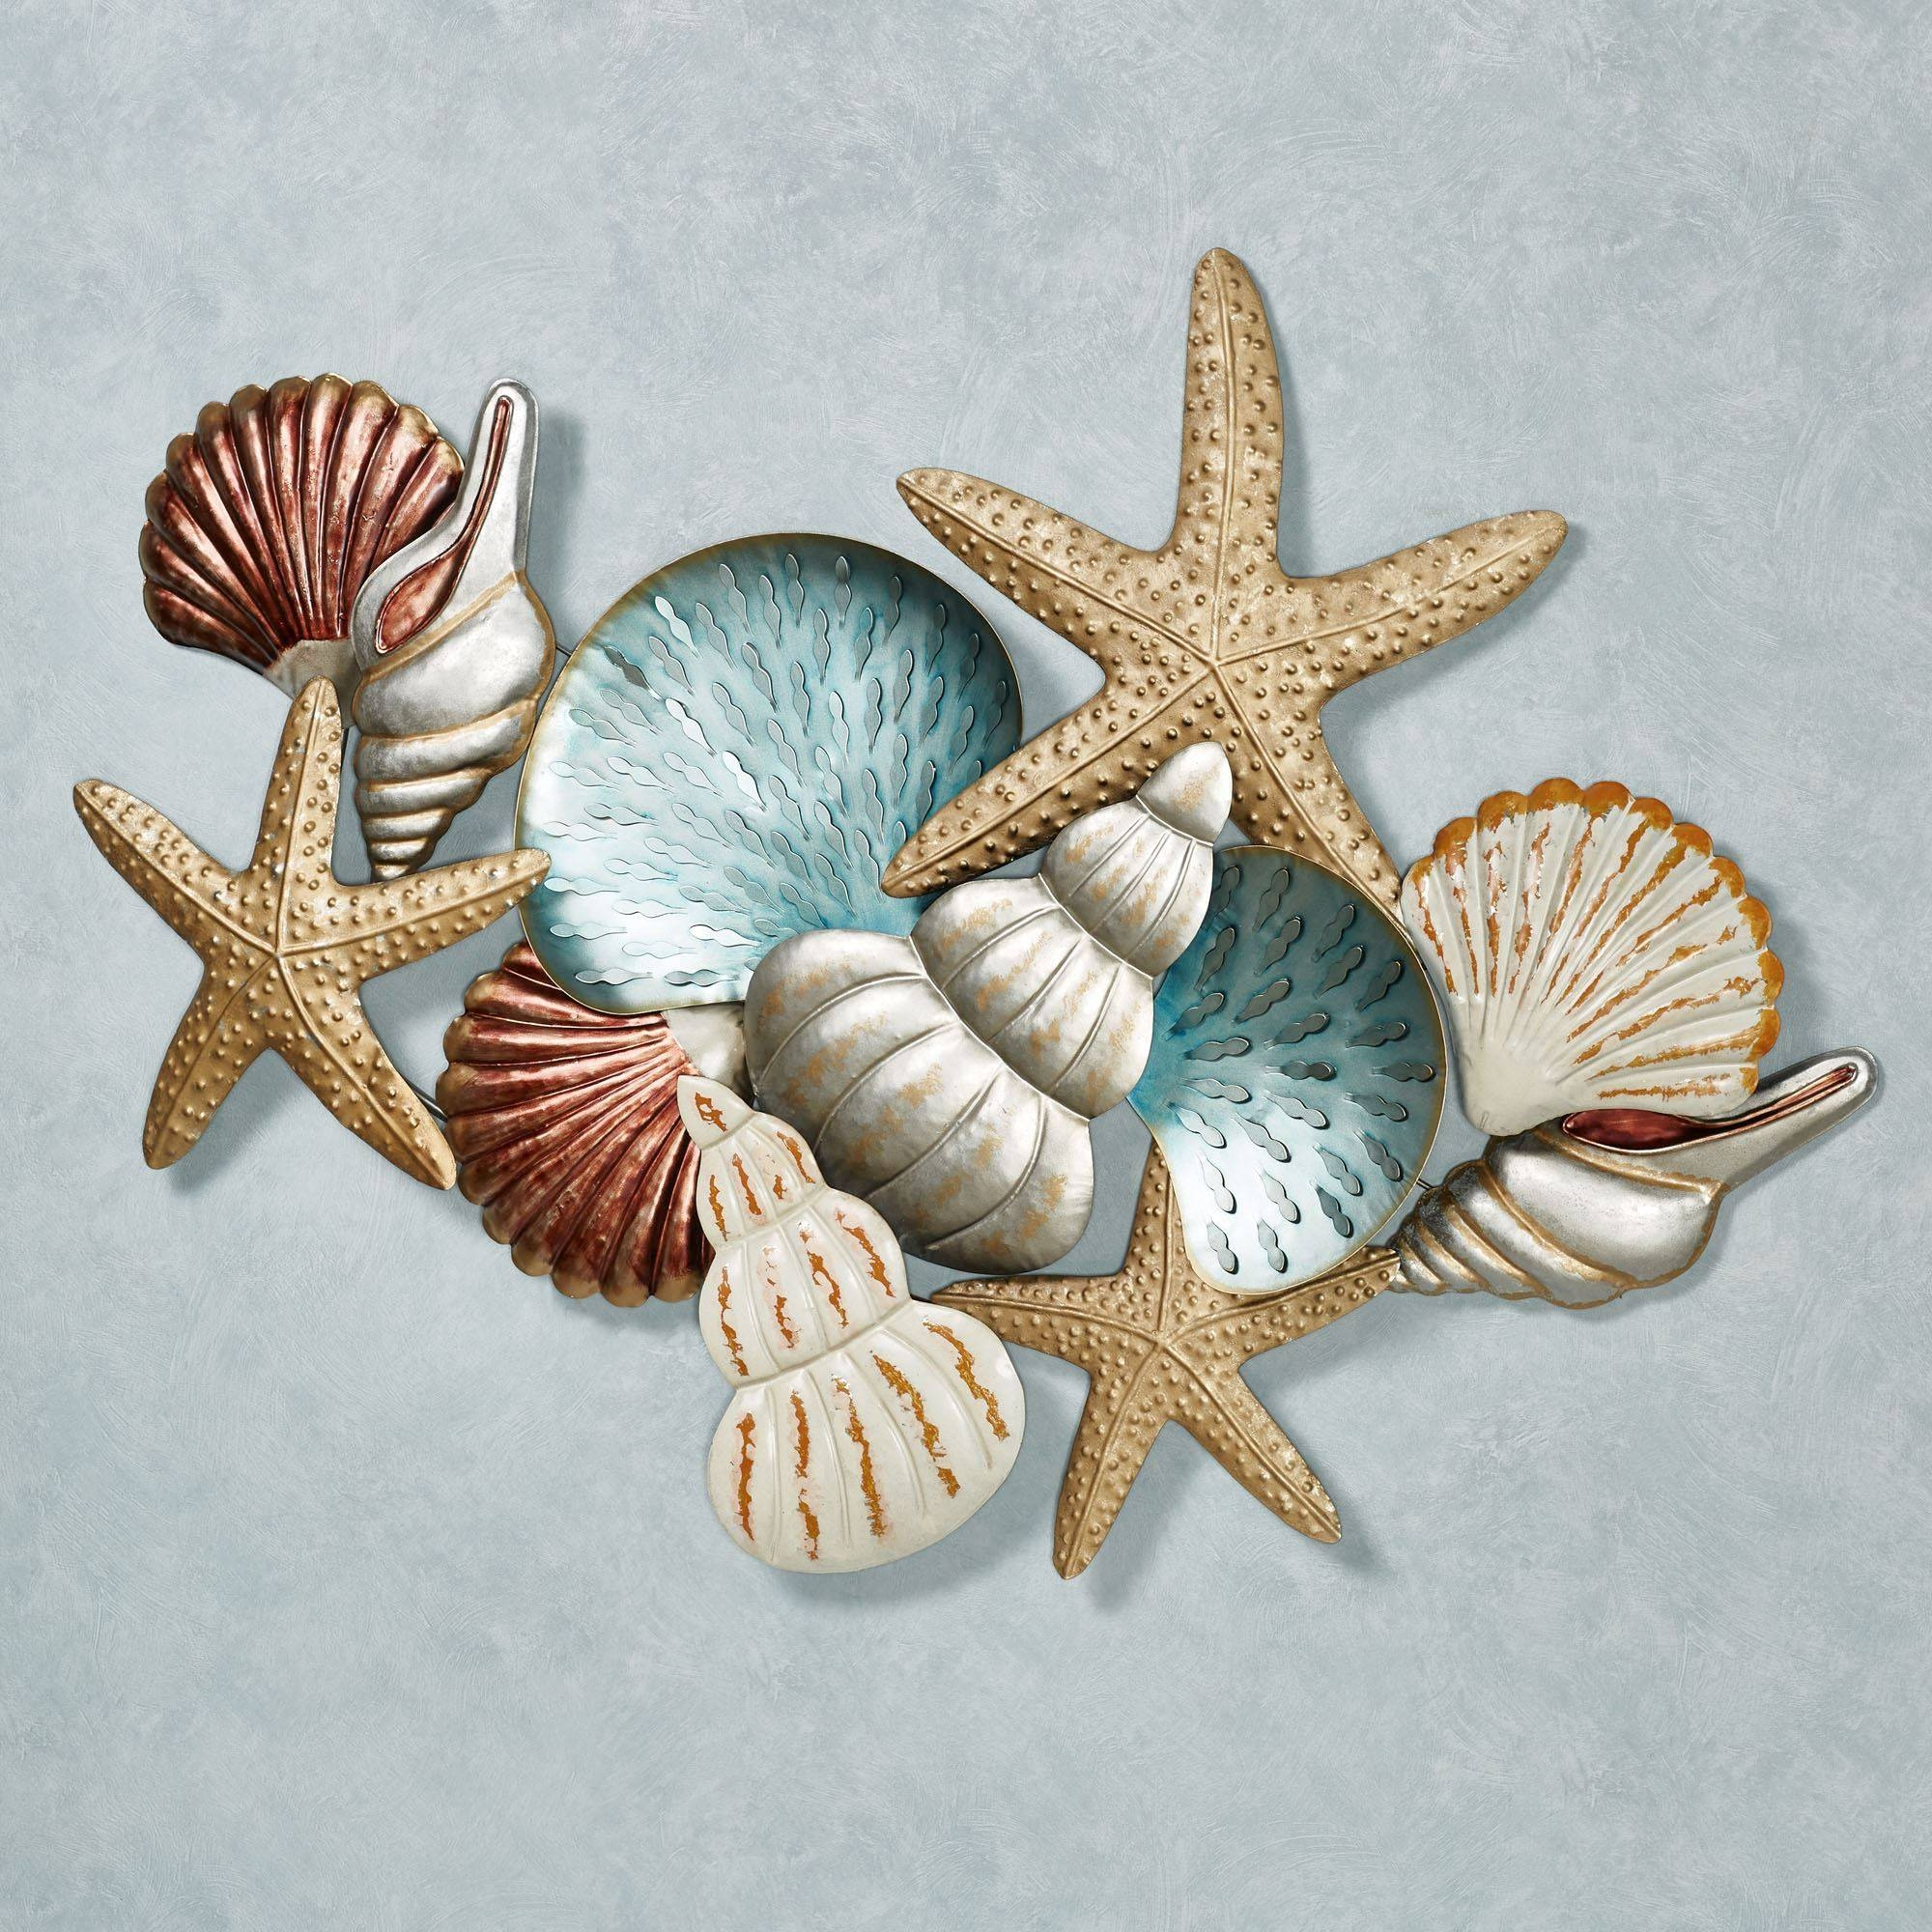 Ocean Collage Metal Wall Art Pertaining To Current Metal Coastal Wall Art (Gallery 1 of 20)